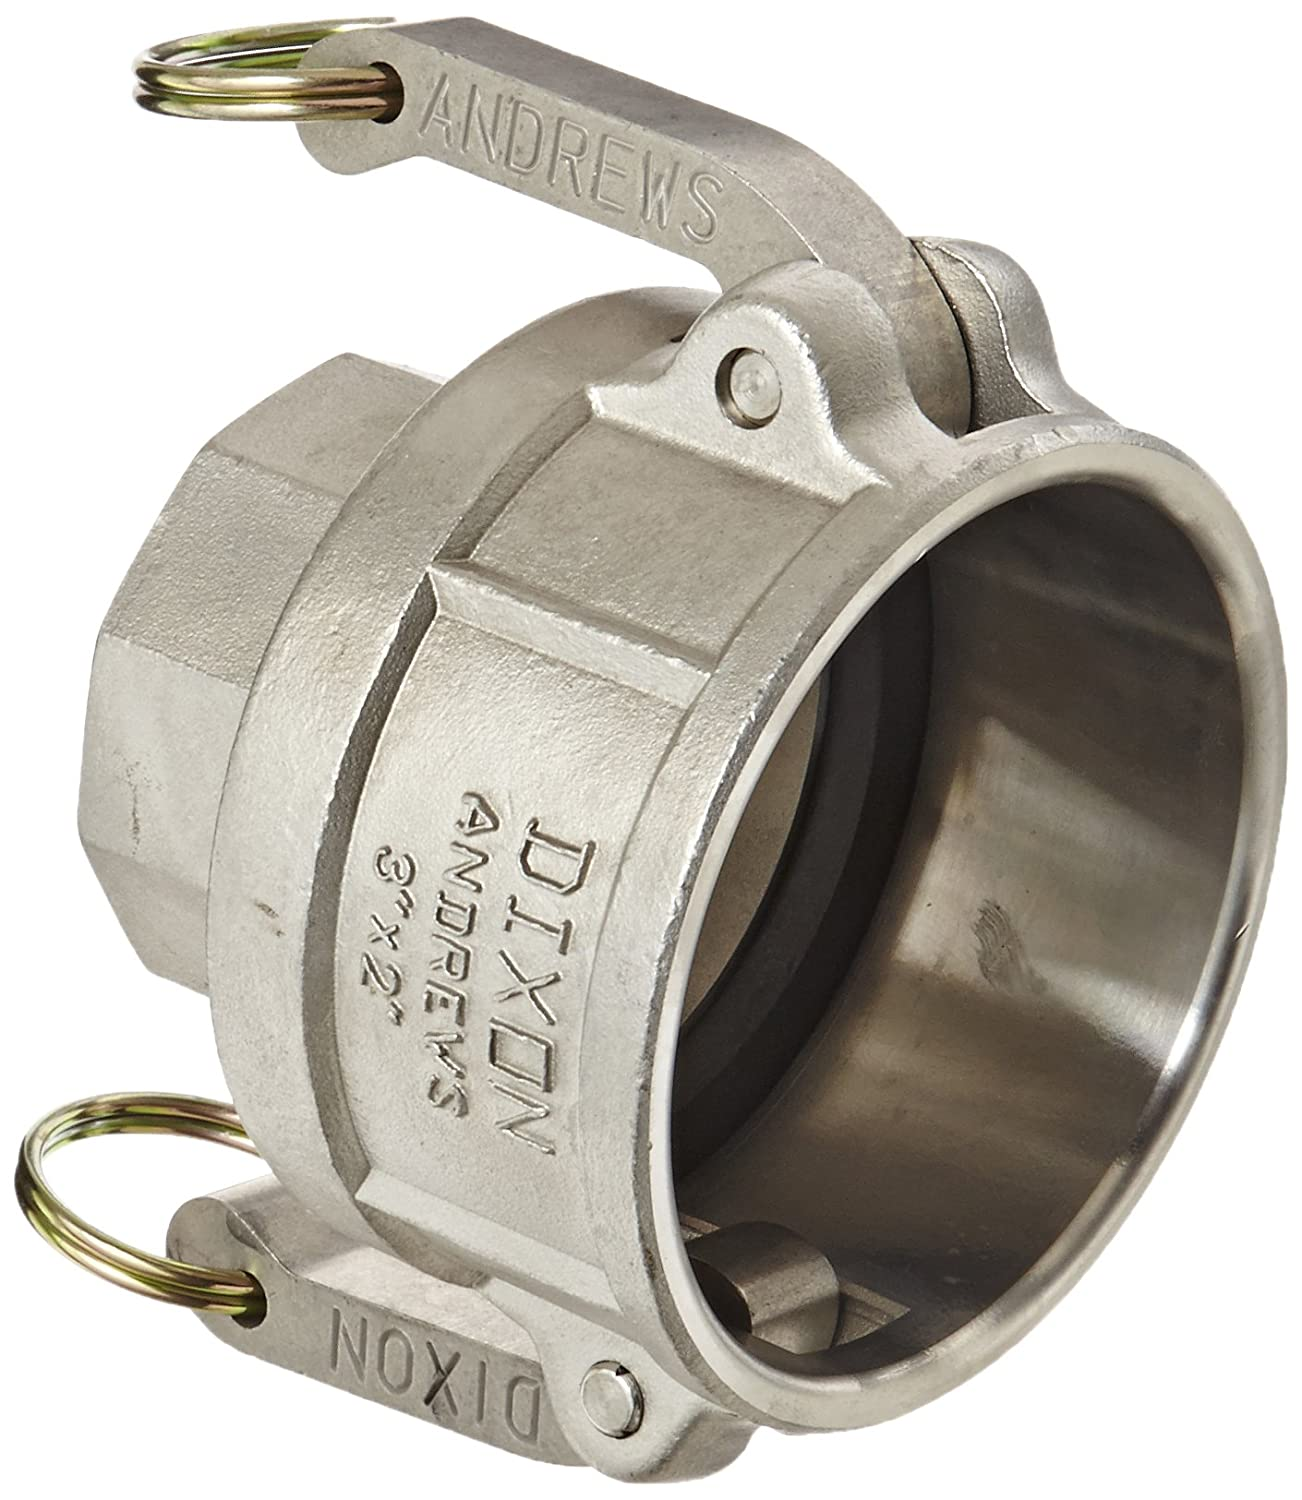 3 Socket x 2 NPT Female 3 Socket x 2 NPT Female Dixon Valve /& Coupling Dixon 3020-D-SS Stainless Steel 316 Type D Cam and Groove Reducing Hose Fitting